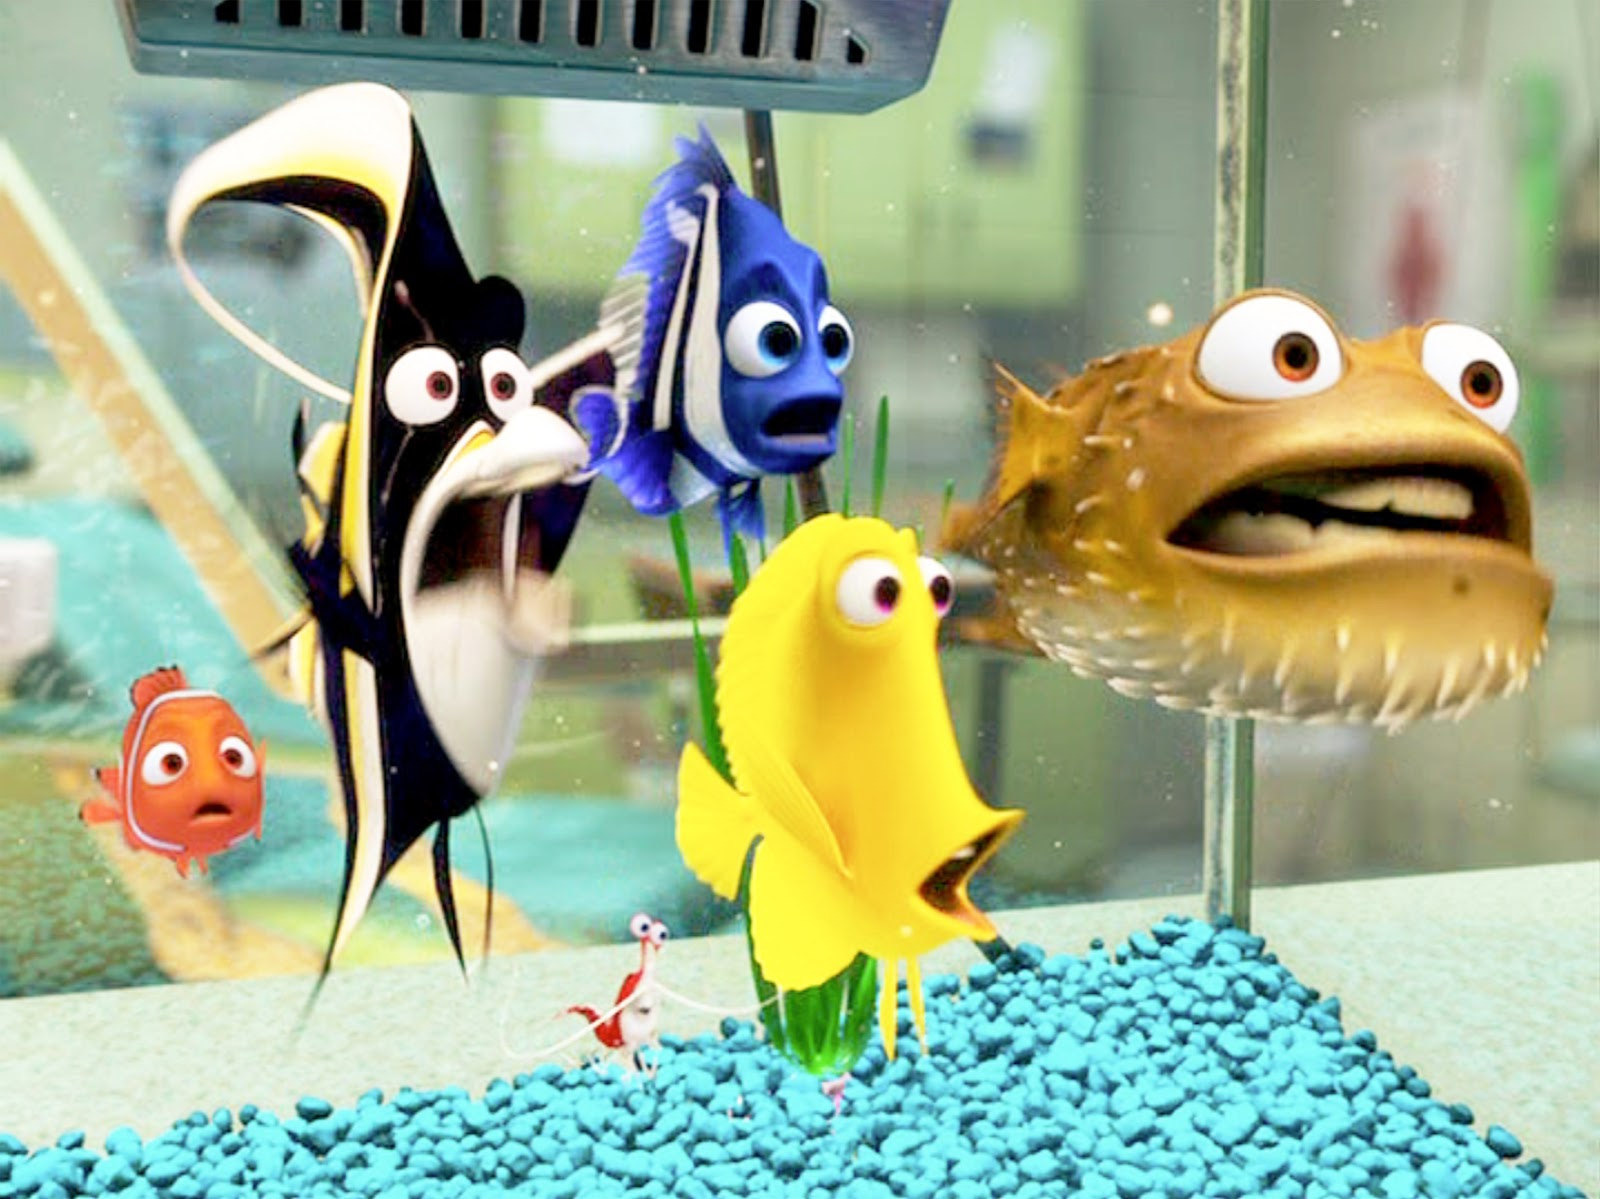 Fish in the tank finding nemo - The Computer Animated Movie Finding Nemo Directed By Andrew Stanton Seen Here In The Fish Tank From Left Nemo A Clownfish Voiced By Alexander